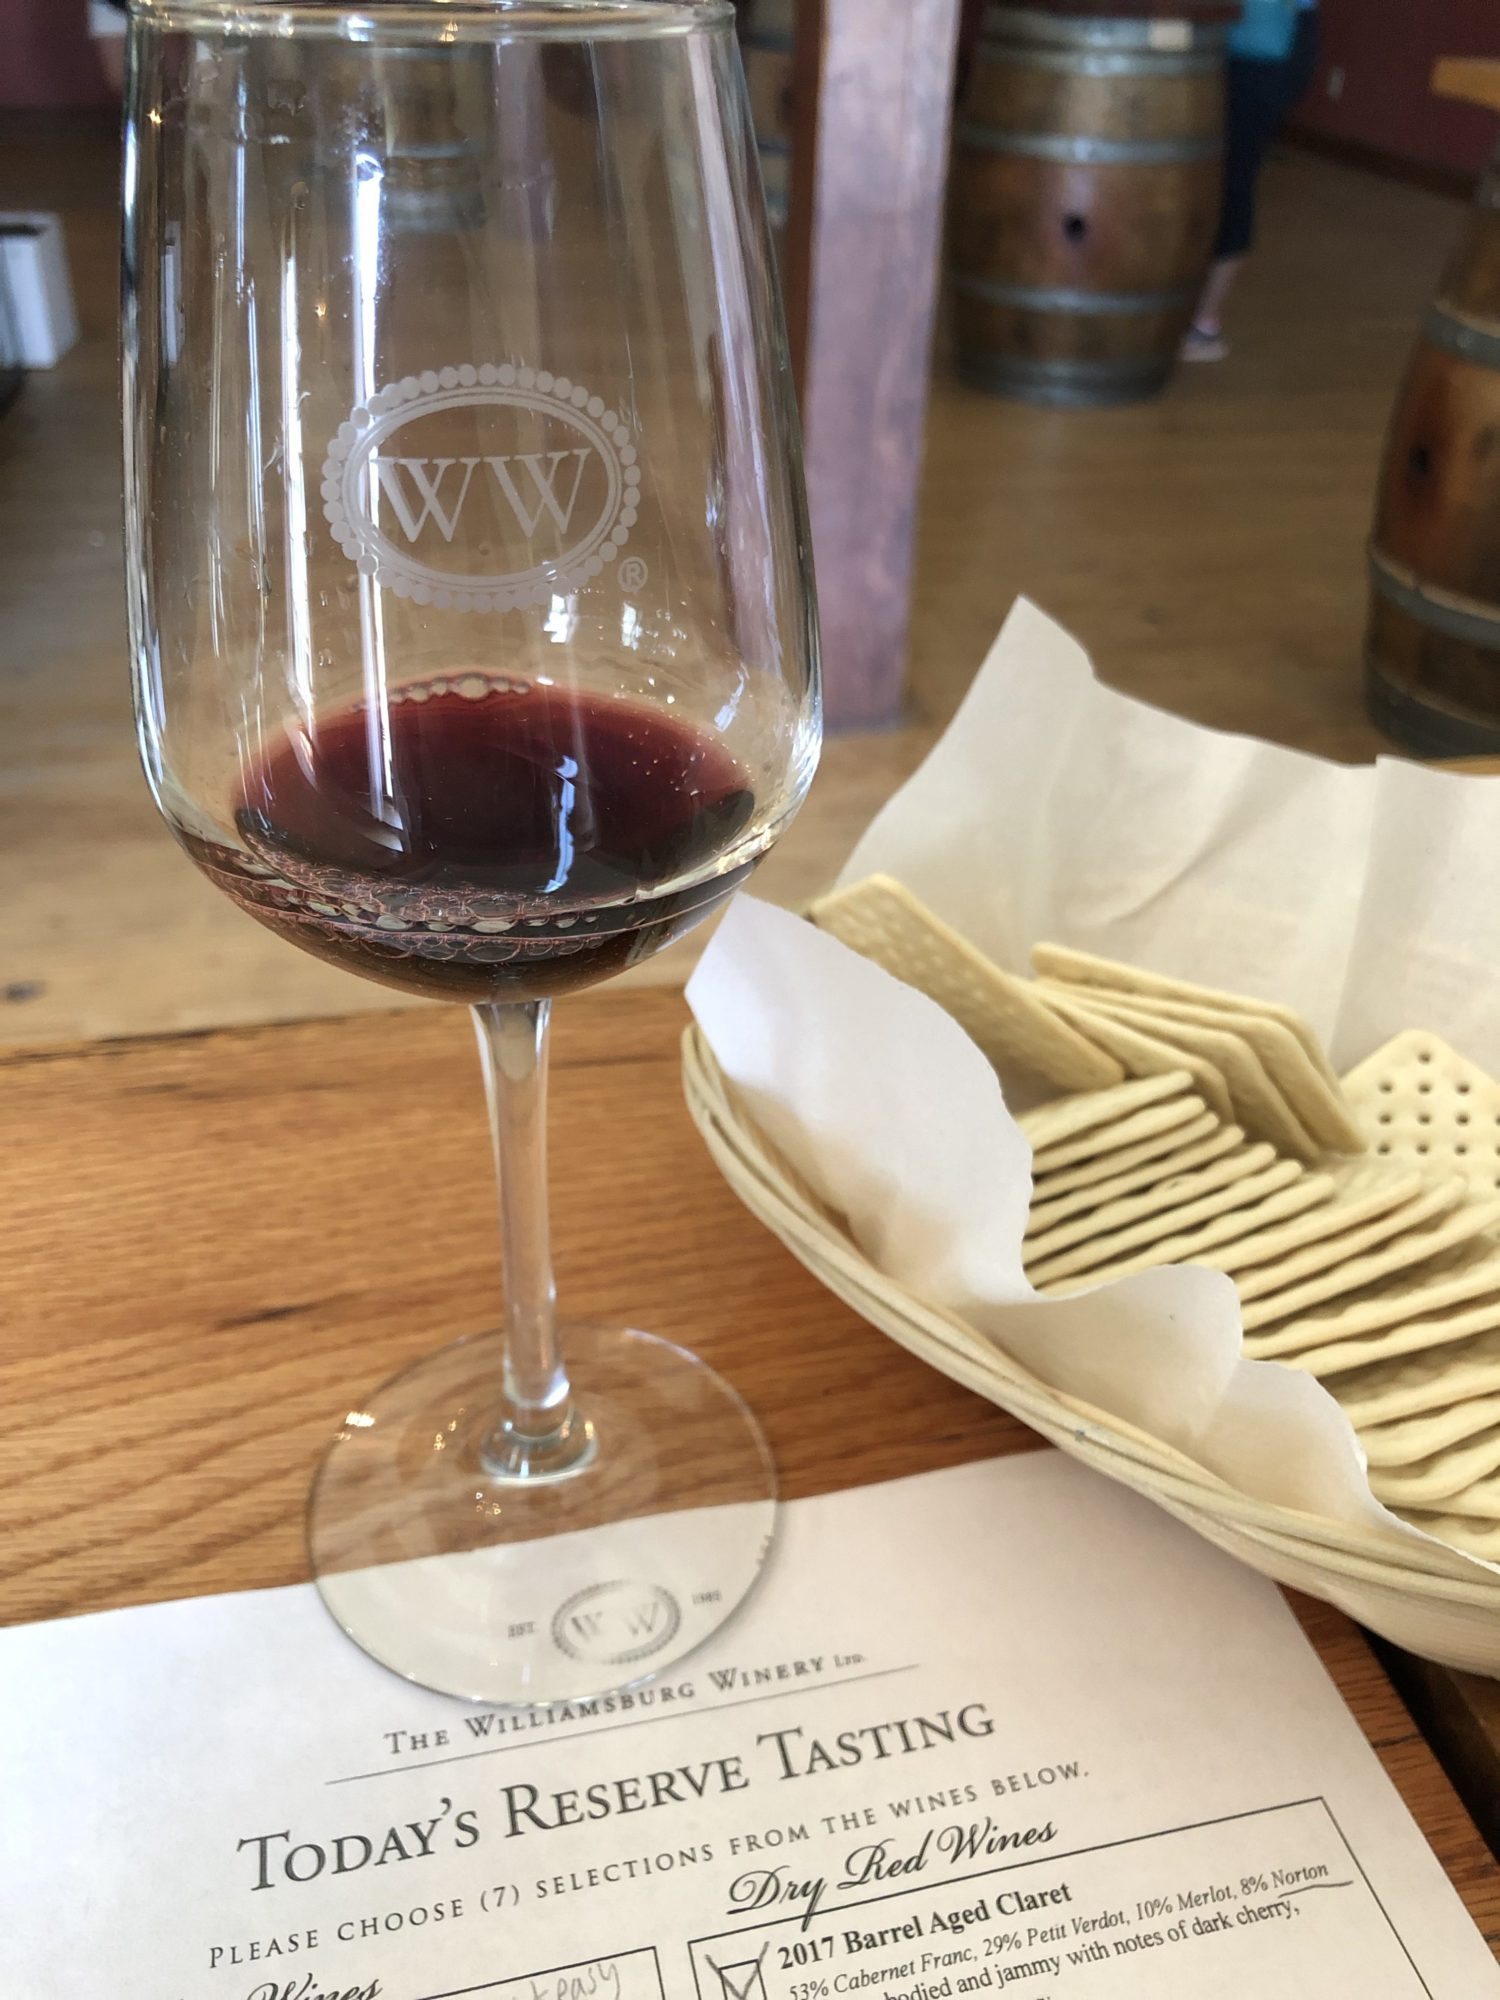 Things to do in Greater Williamsburg include wine tasting